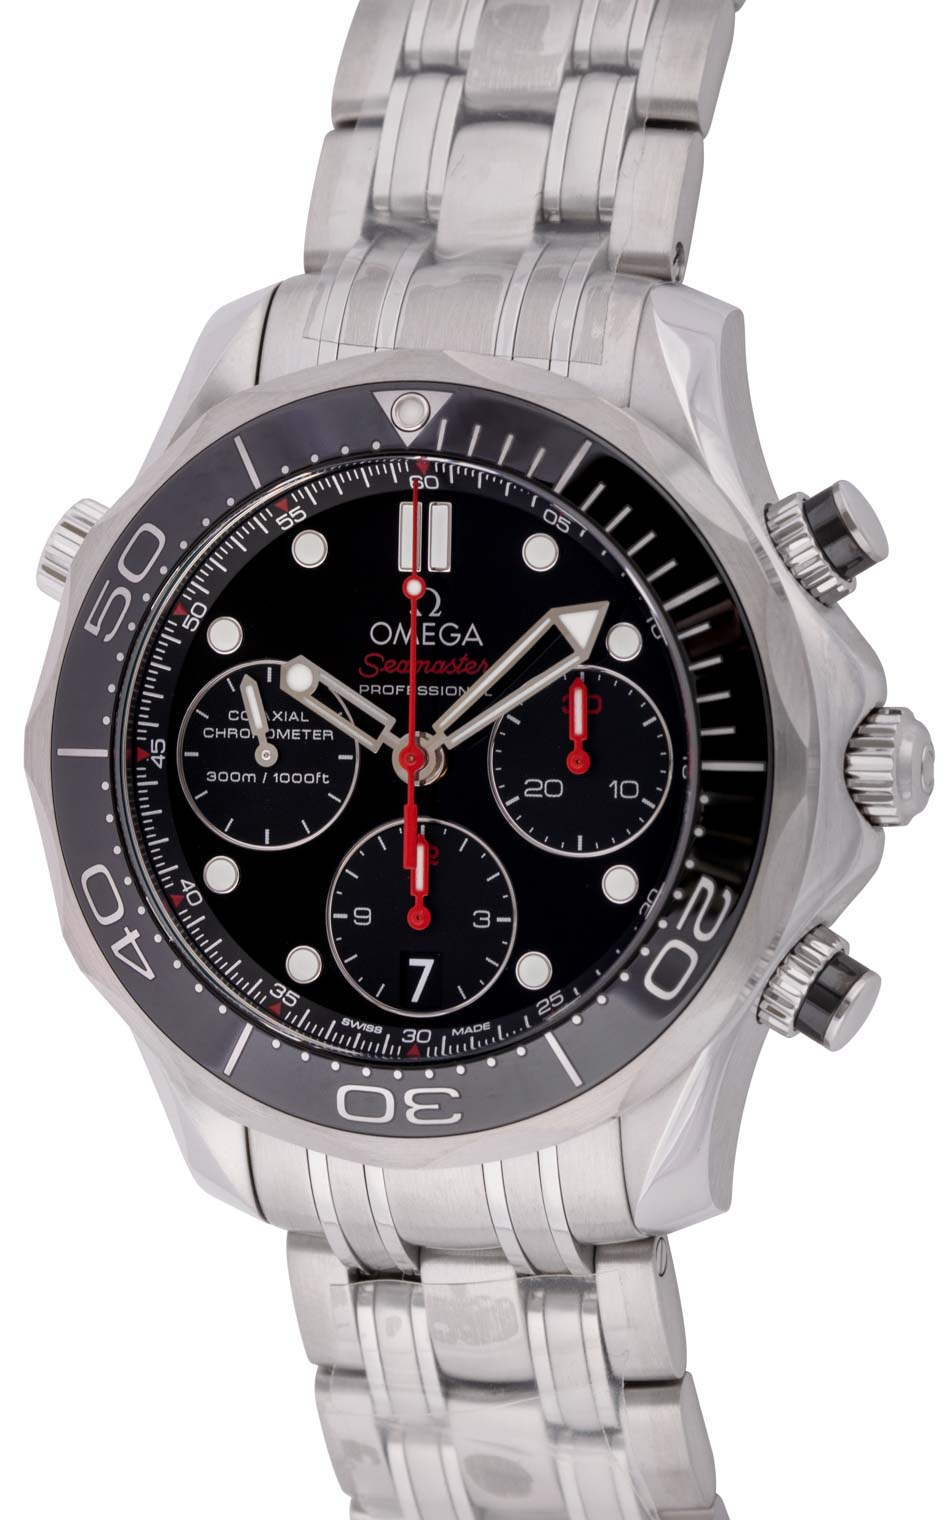 Omega - Seamaster Diver 300M Chronograph